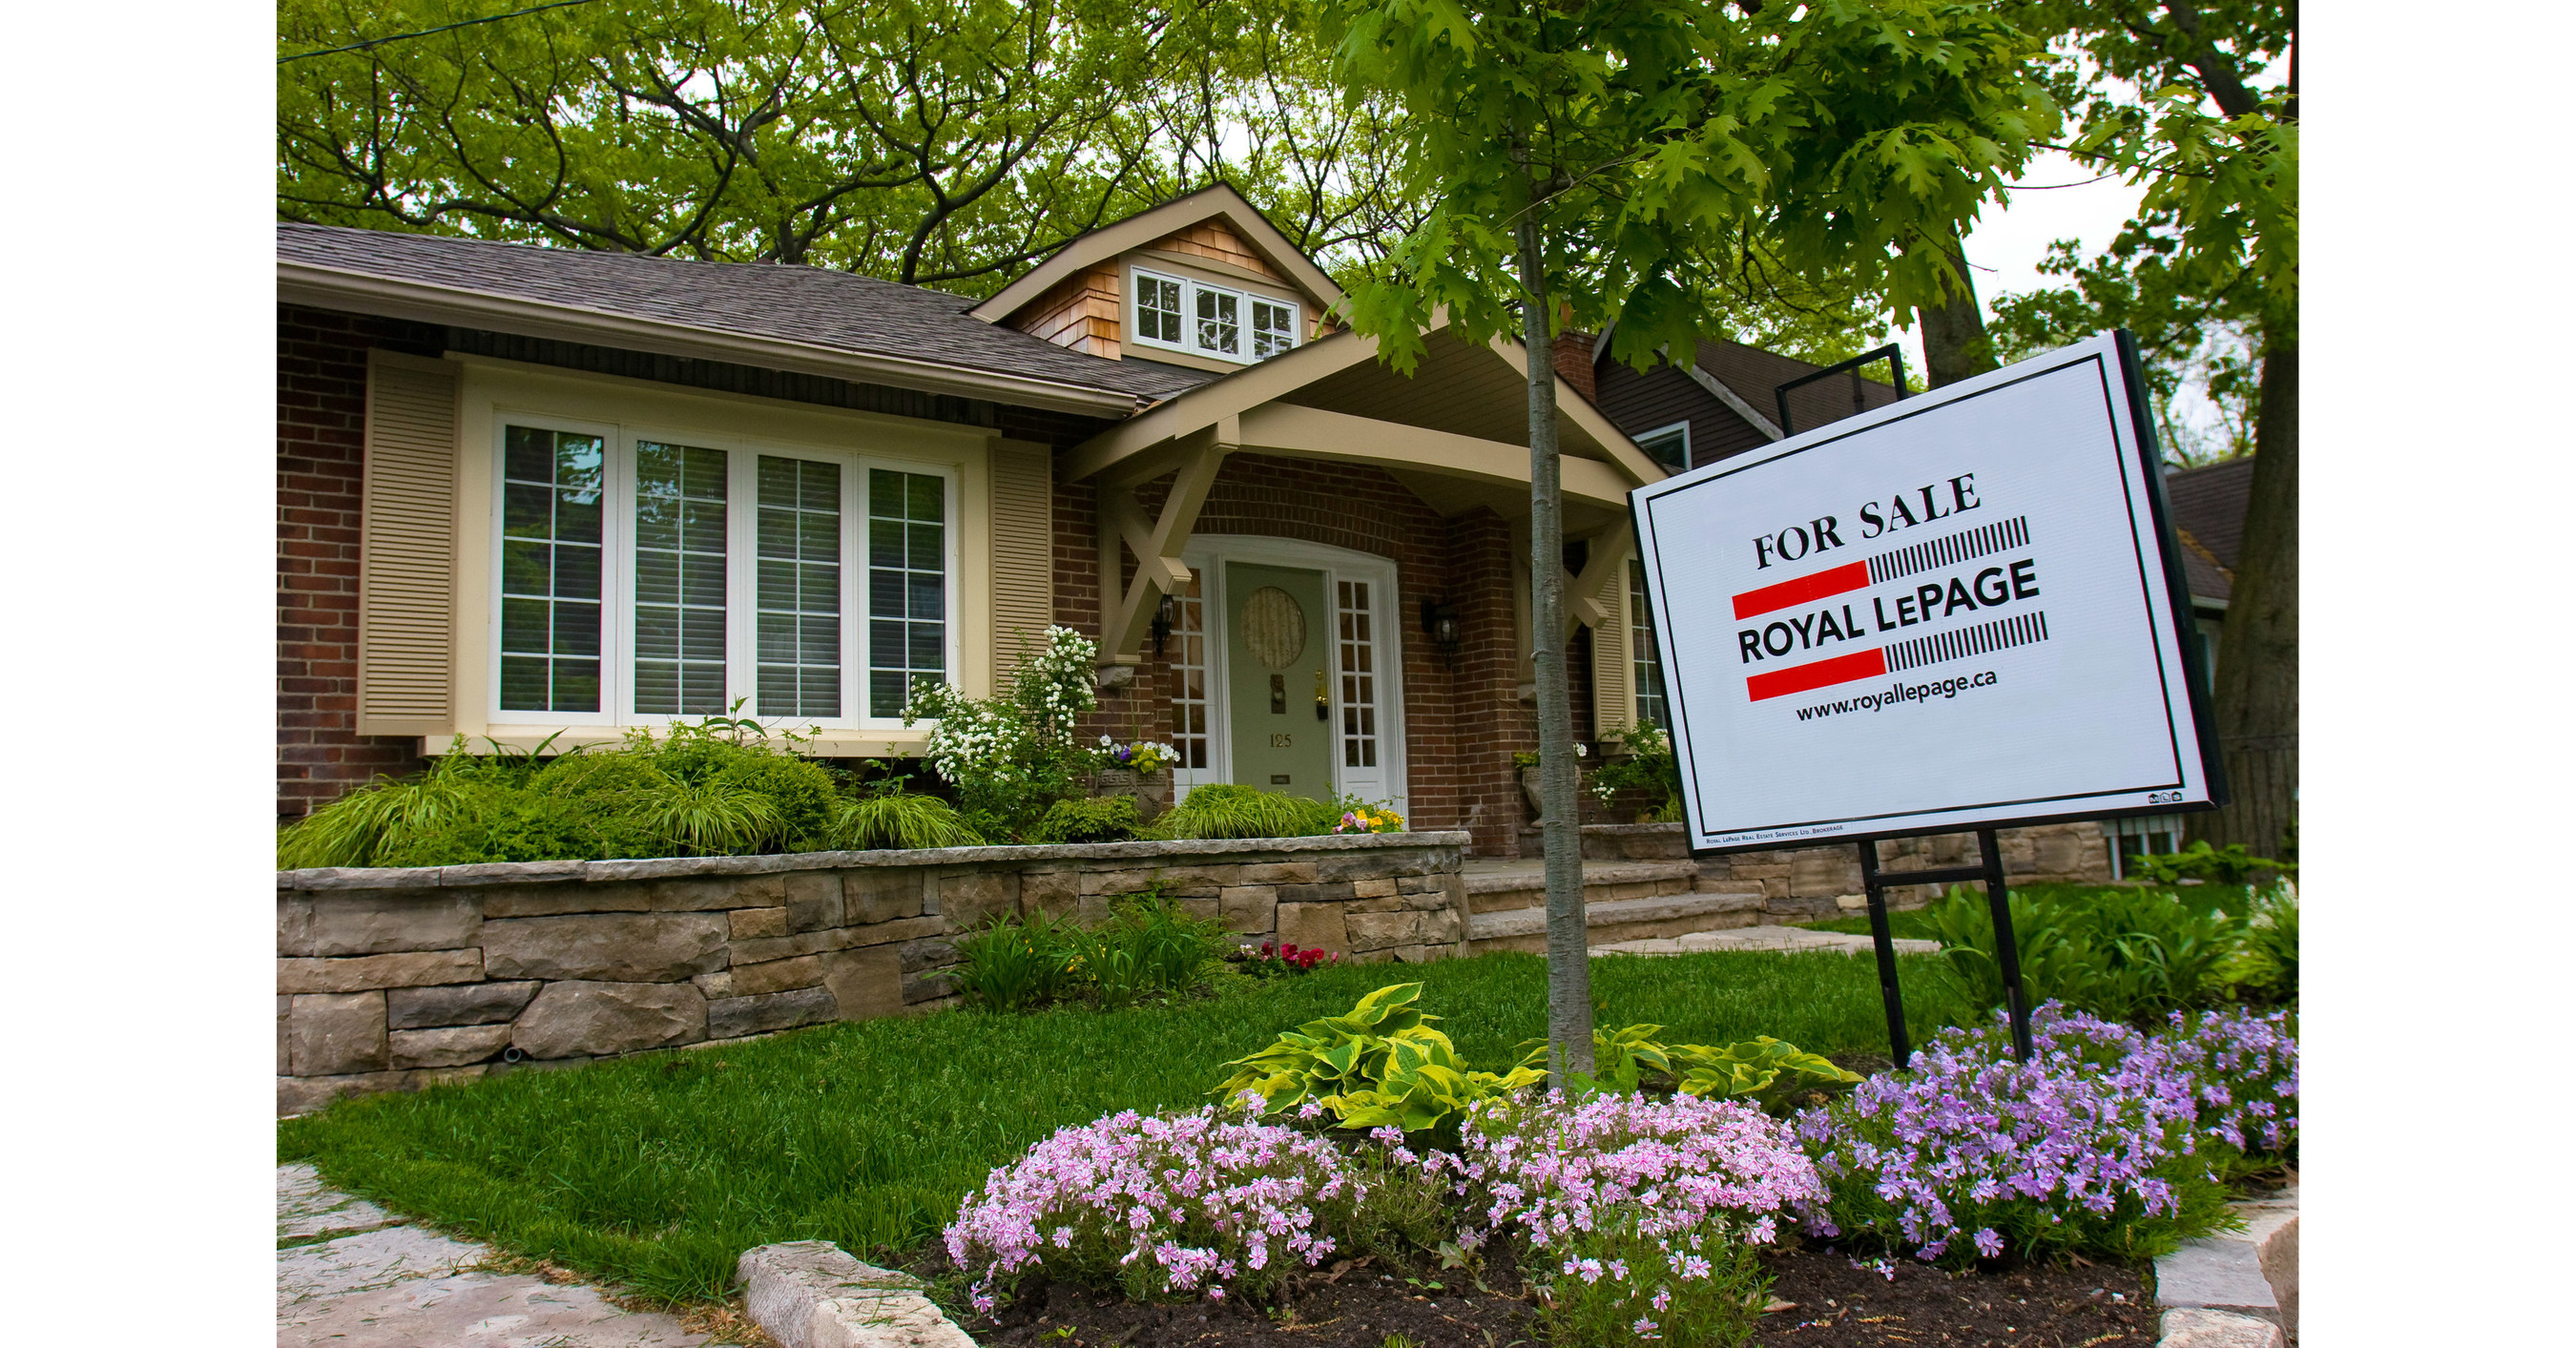 Residential Real Estate : Cnw canada s residential real estate market makes the